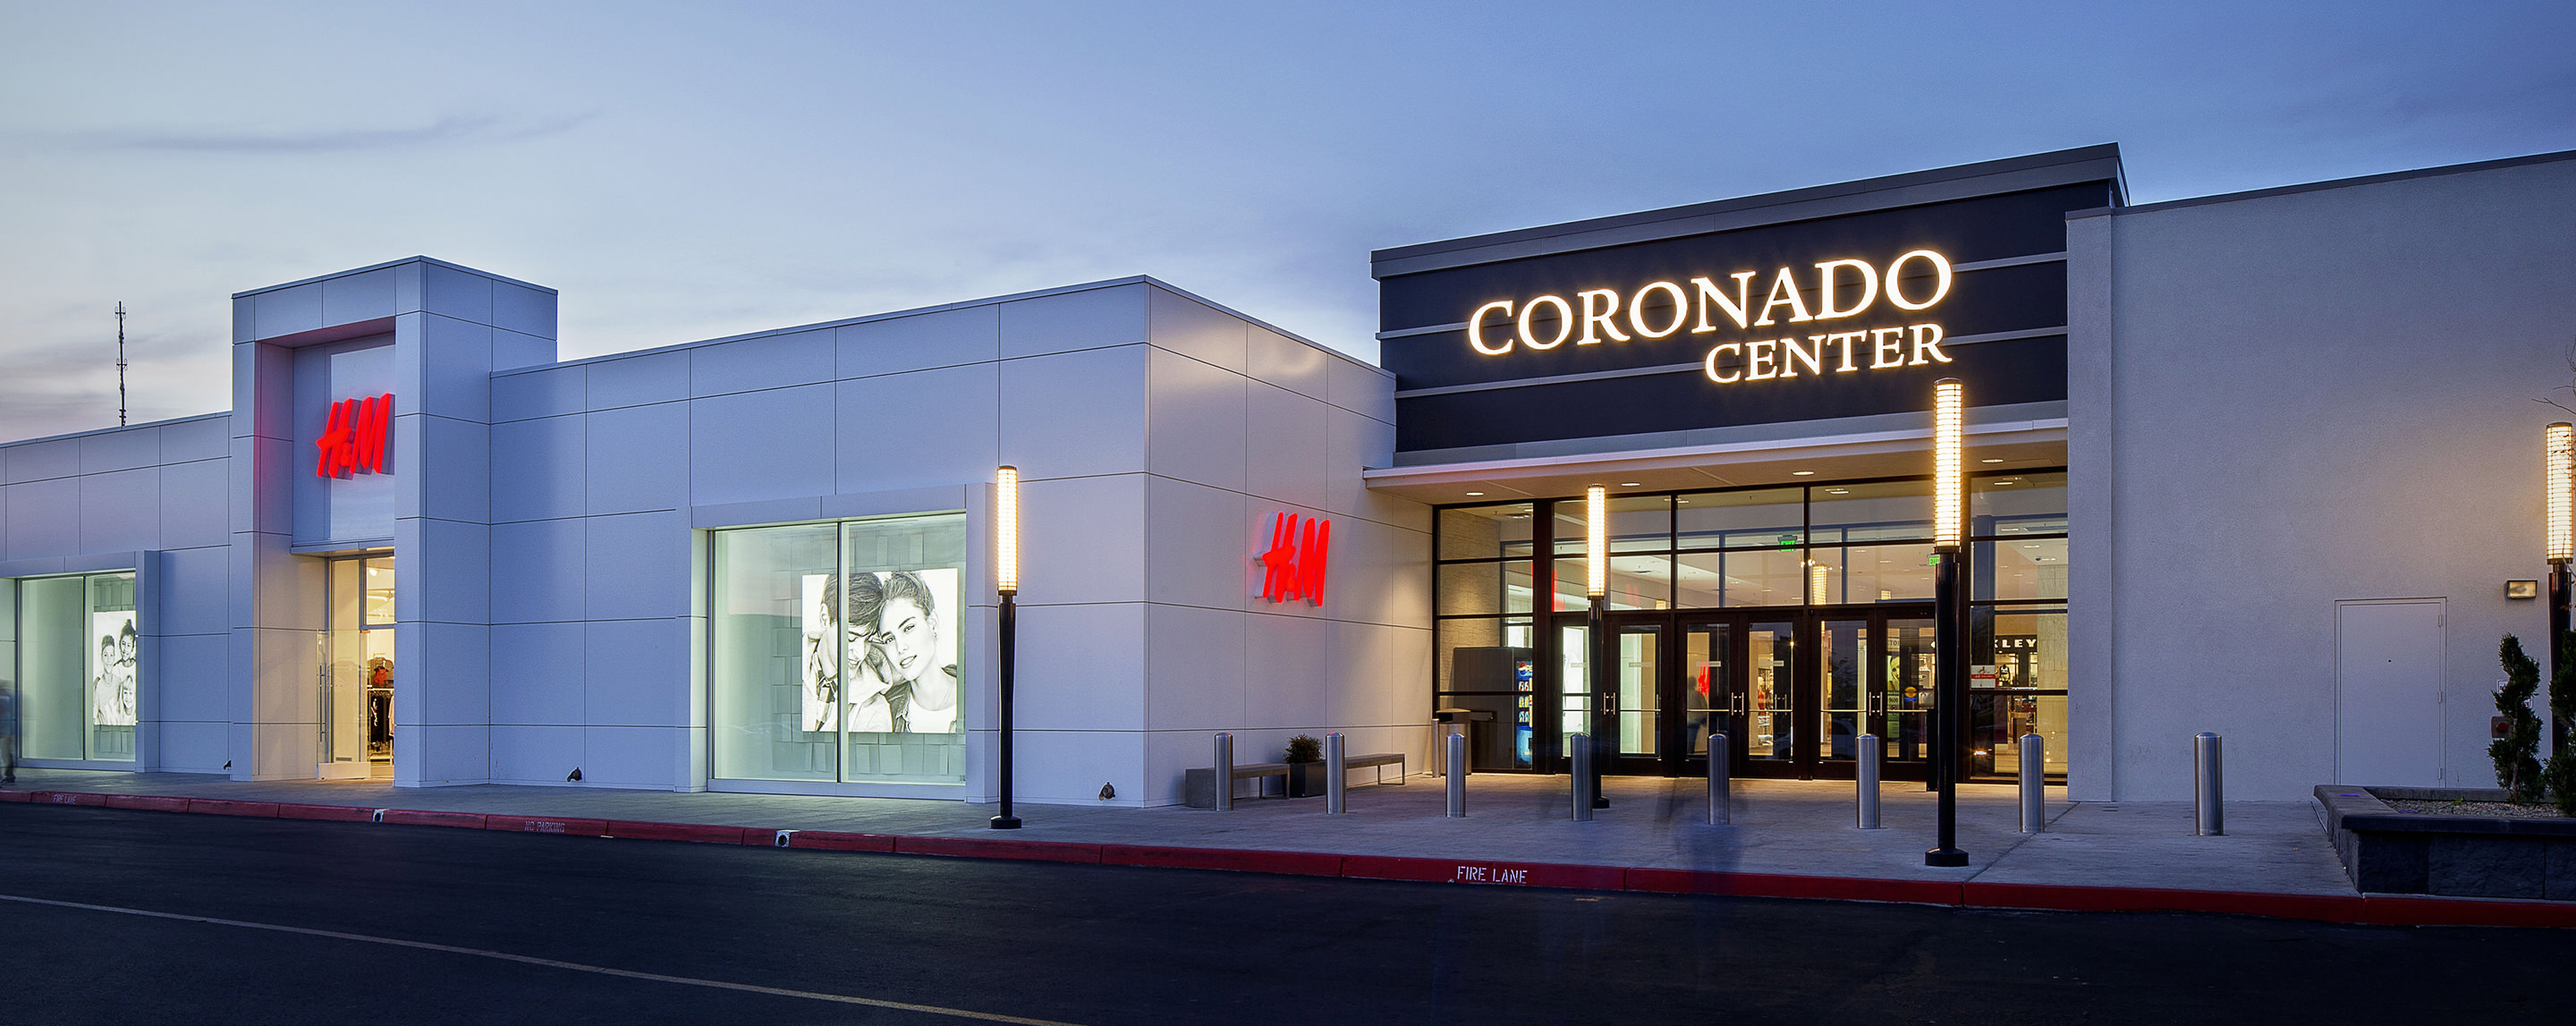 One of the Coronado Center entrances is lit up just after sunset right next to an H&M.